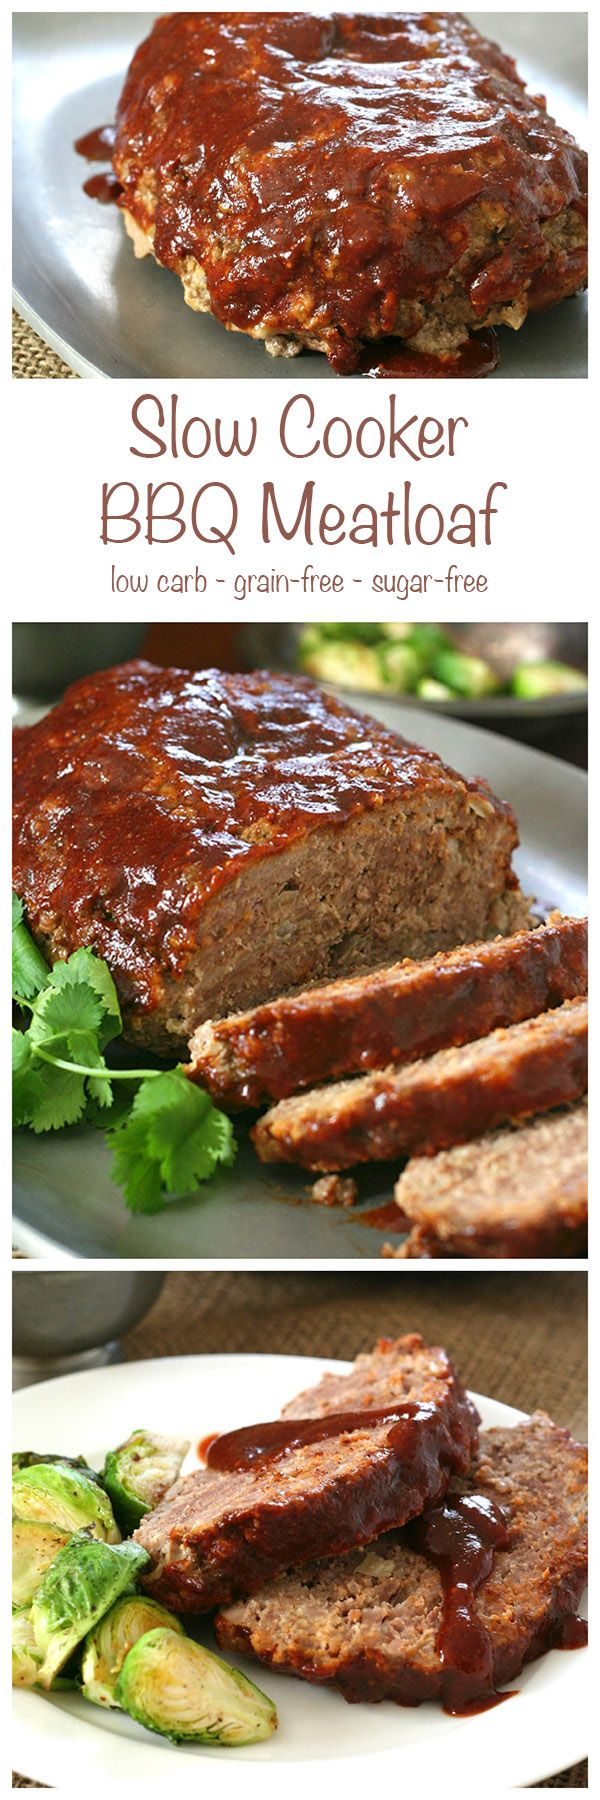 Low-carb meatloaf recipes ground beef